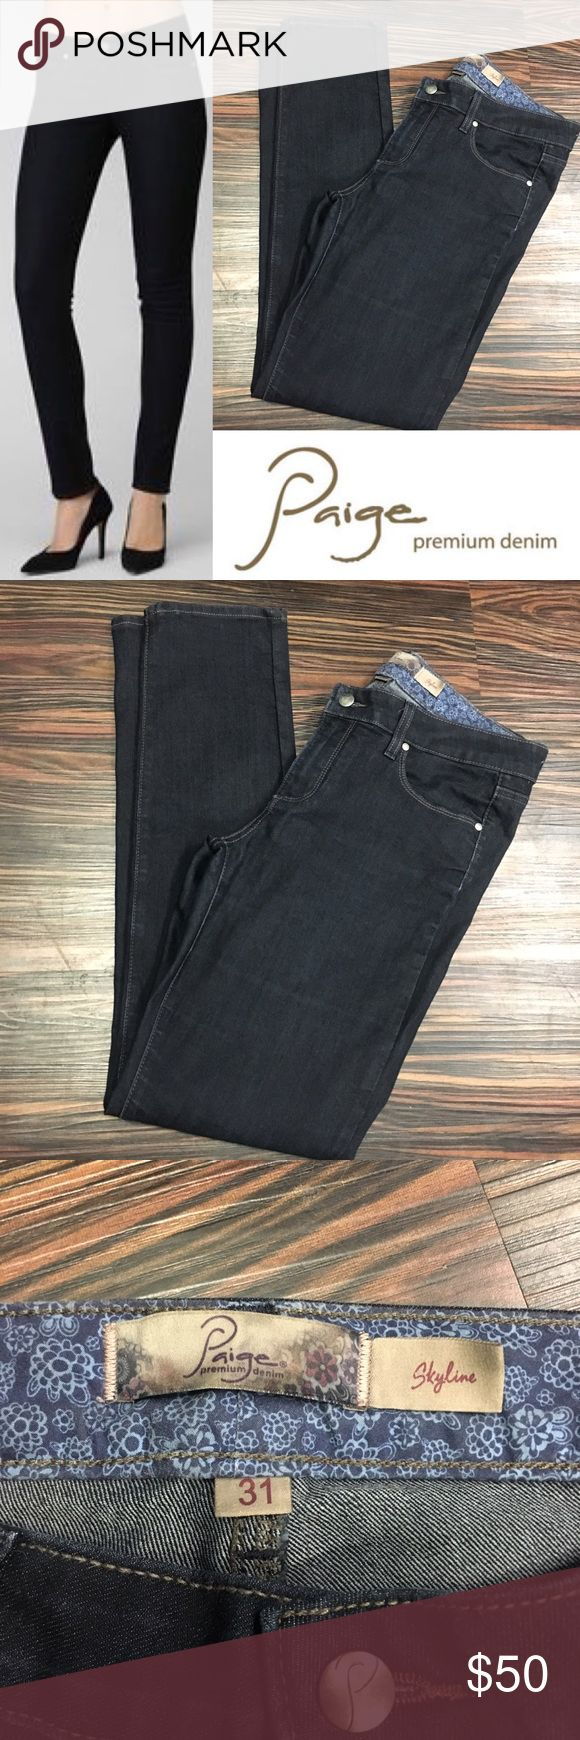 PAIGE Premium denim Skyline skinny in twilight Five pocket styling, with zip fly and branded button closure.  With 80% cotton 19% polyester and 1% spandex, these jeans are soft to the touch. PAIGE Jeans Skinny